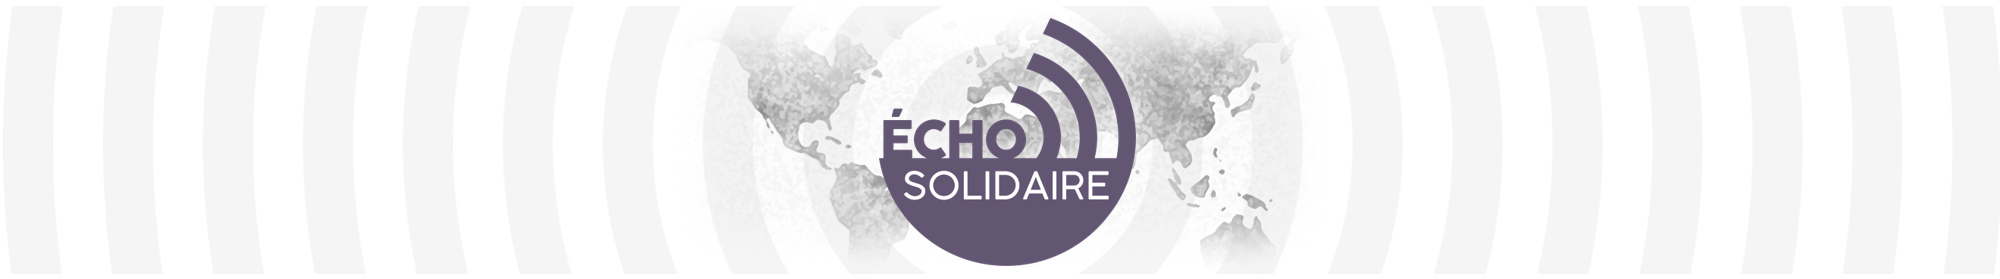 Echo-Solidaire.org